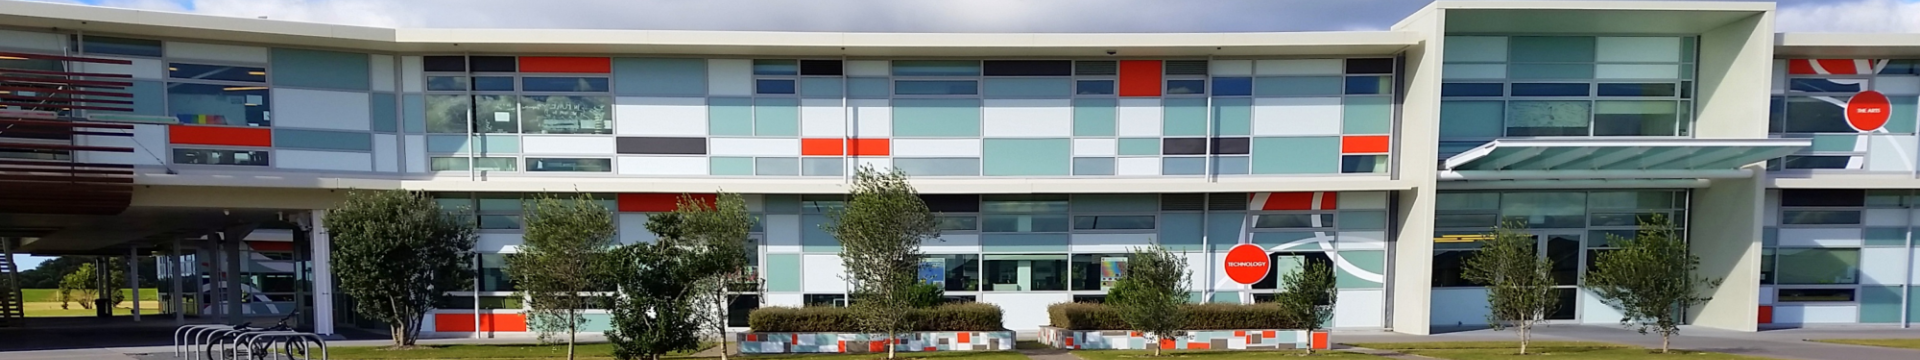 School sliders Papamoa